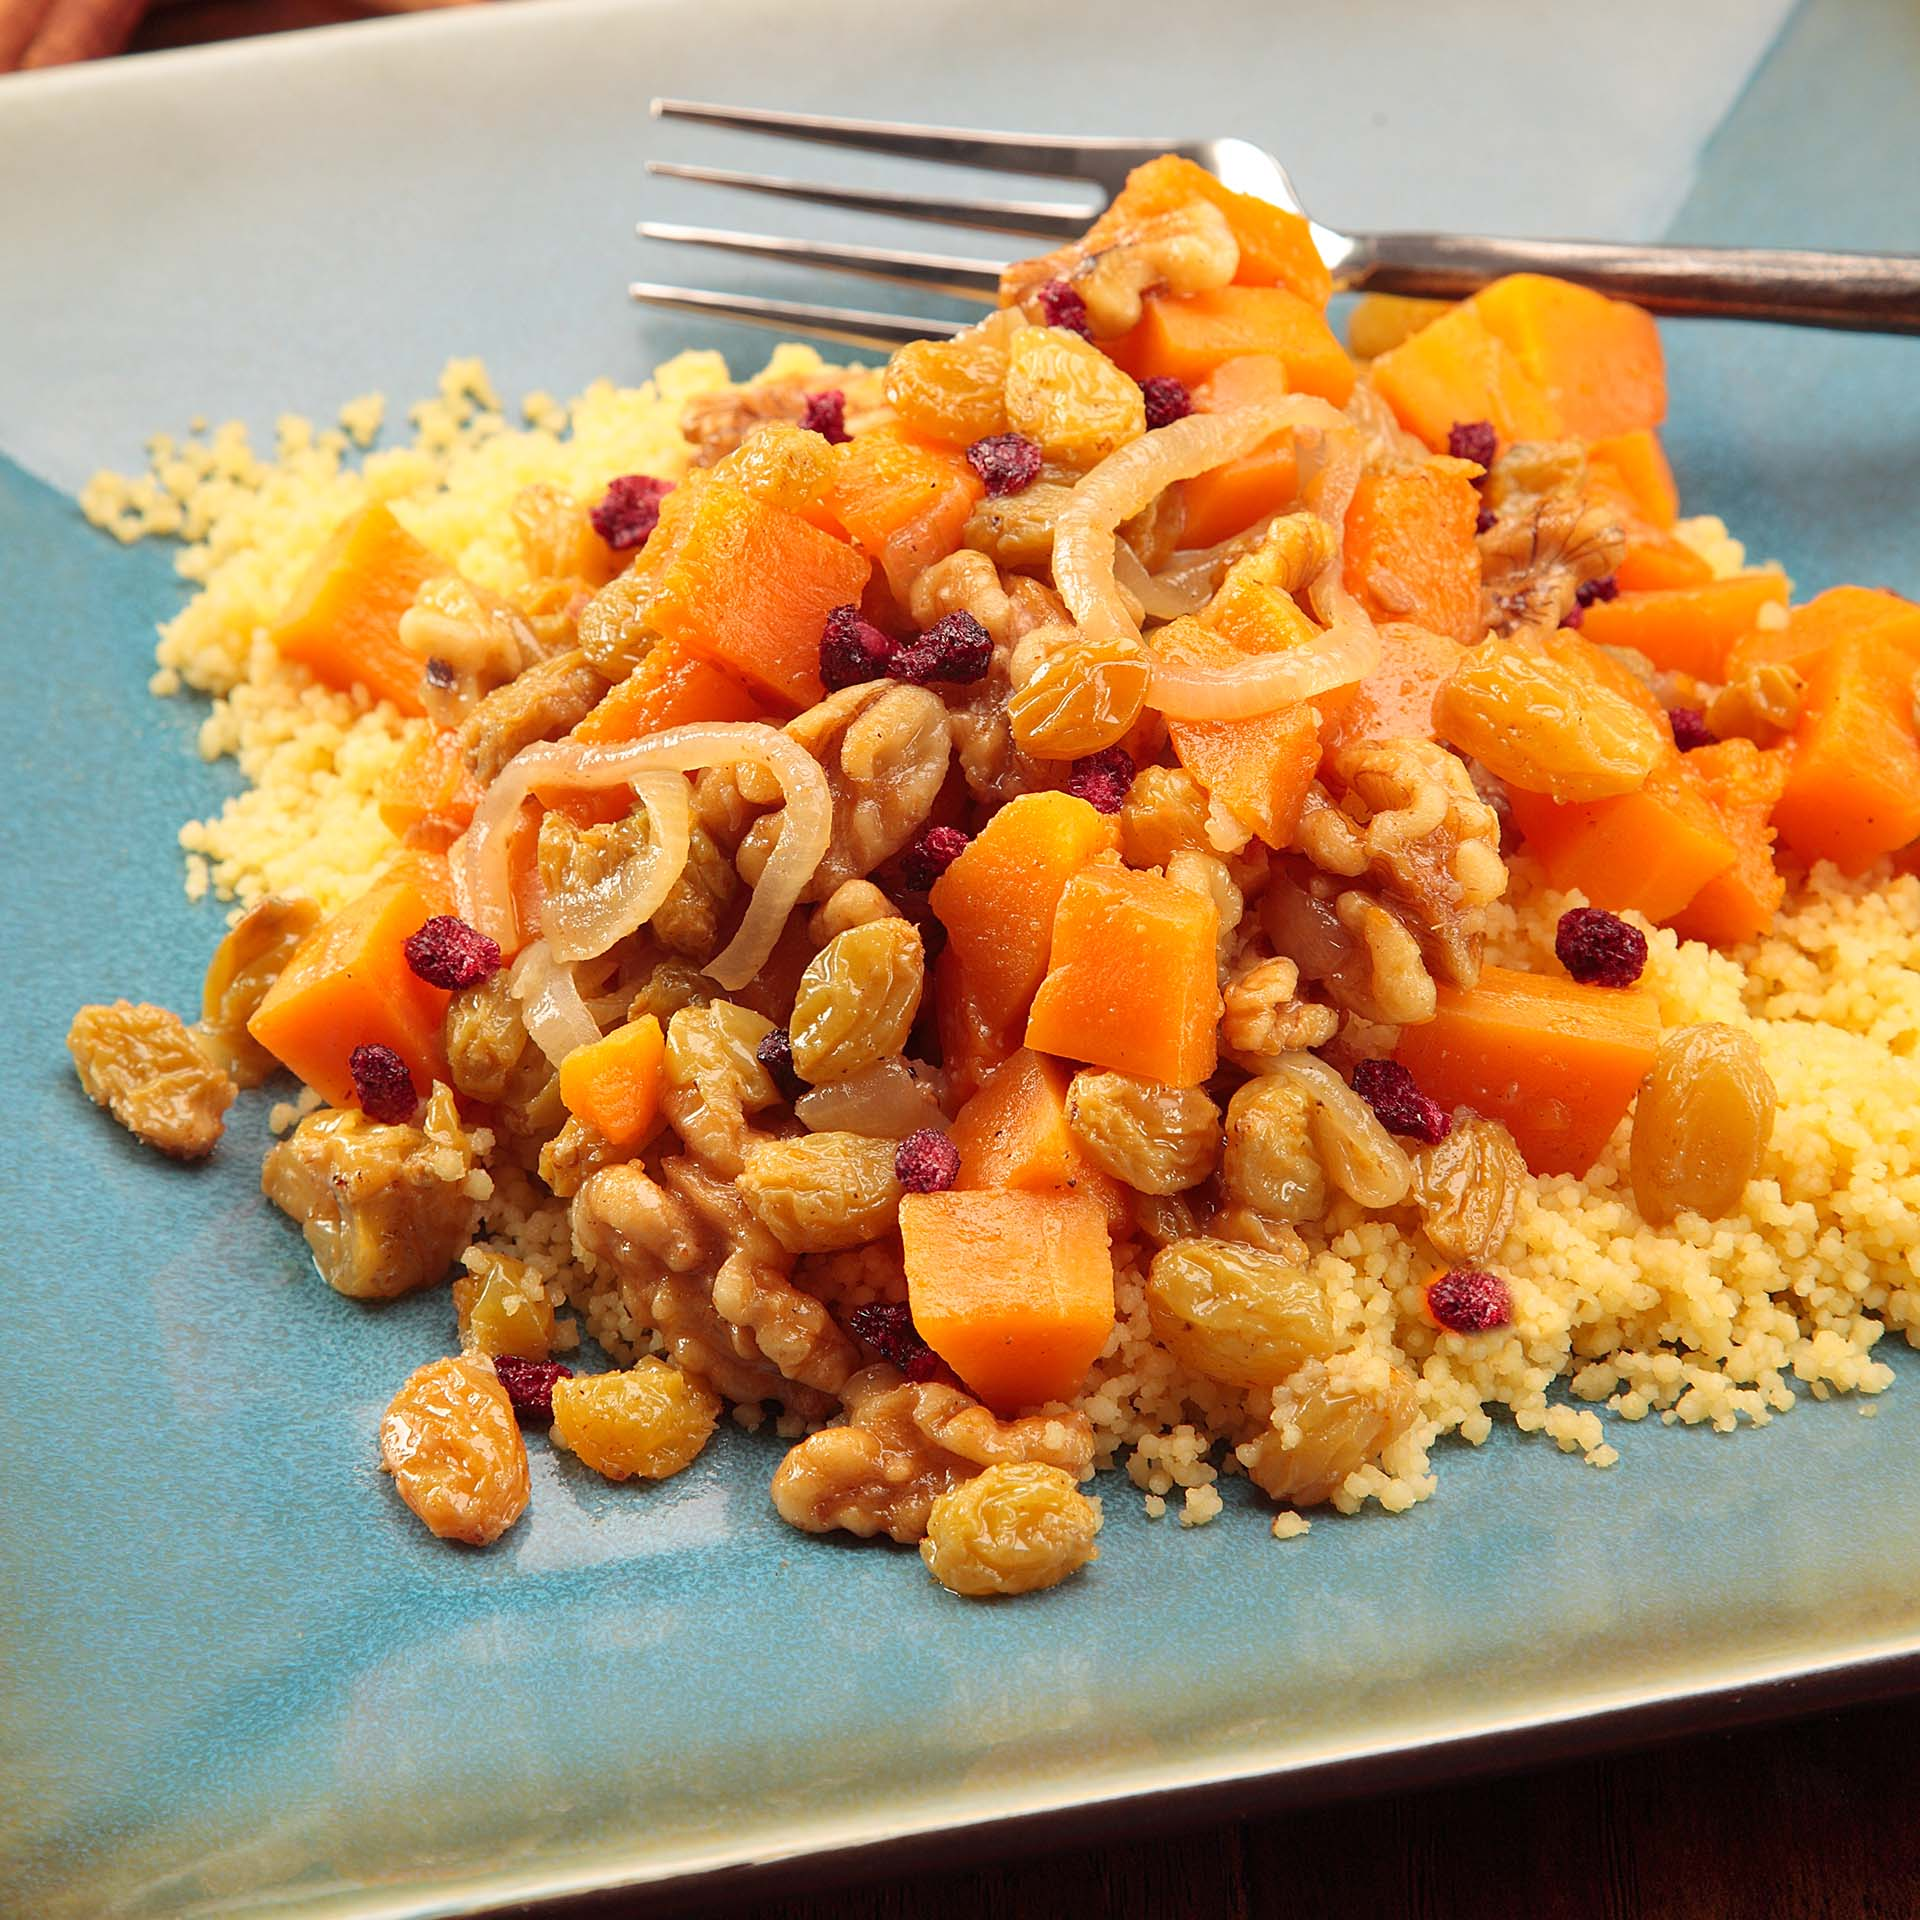 Braised Butternut Squash With Walnuts Onions And Golden